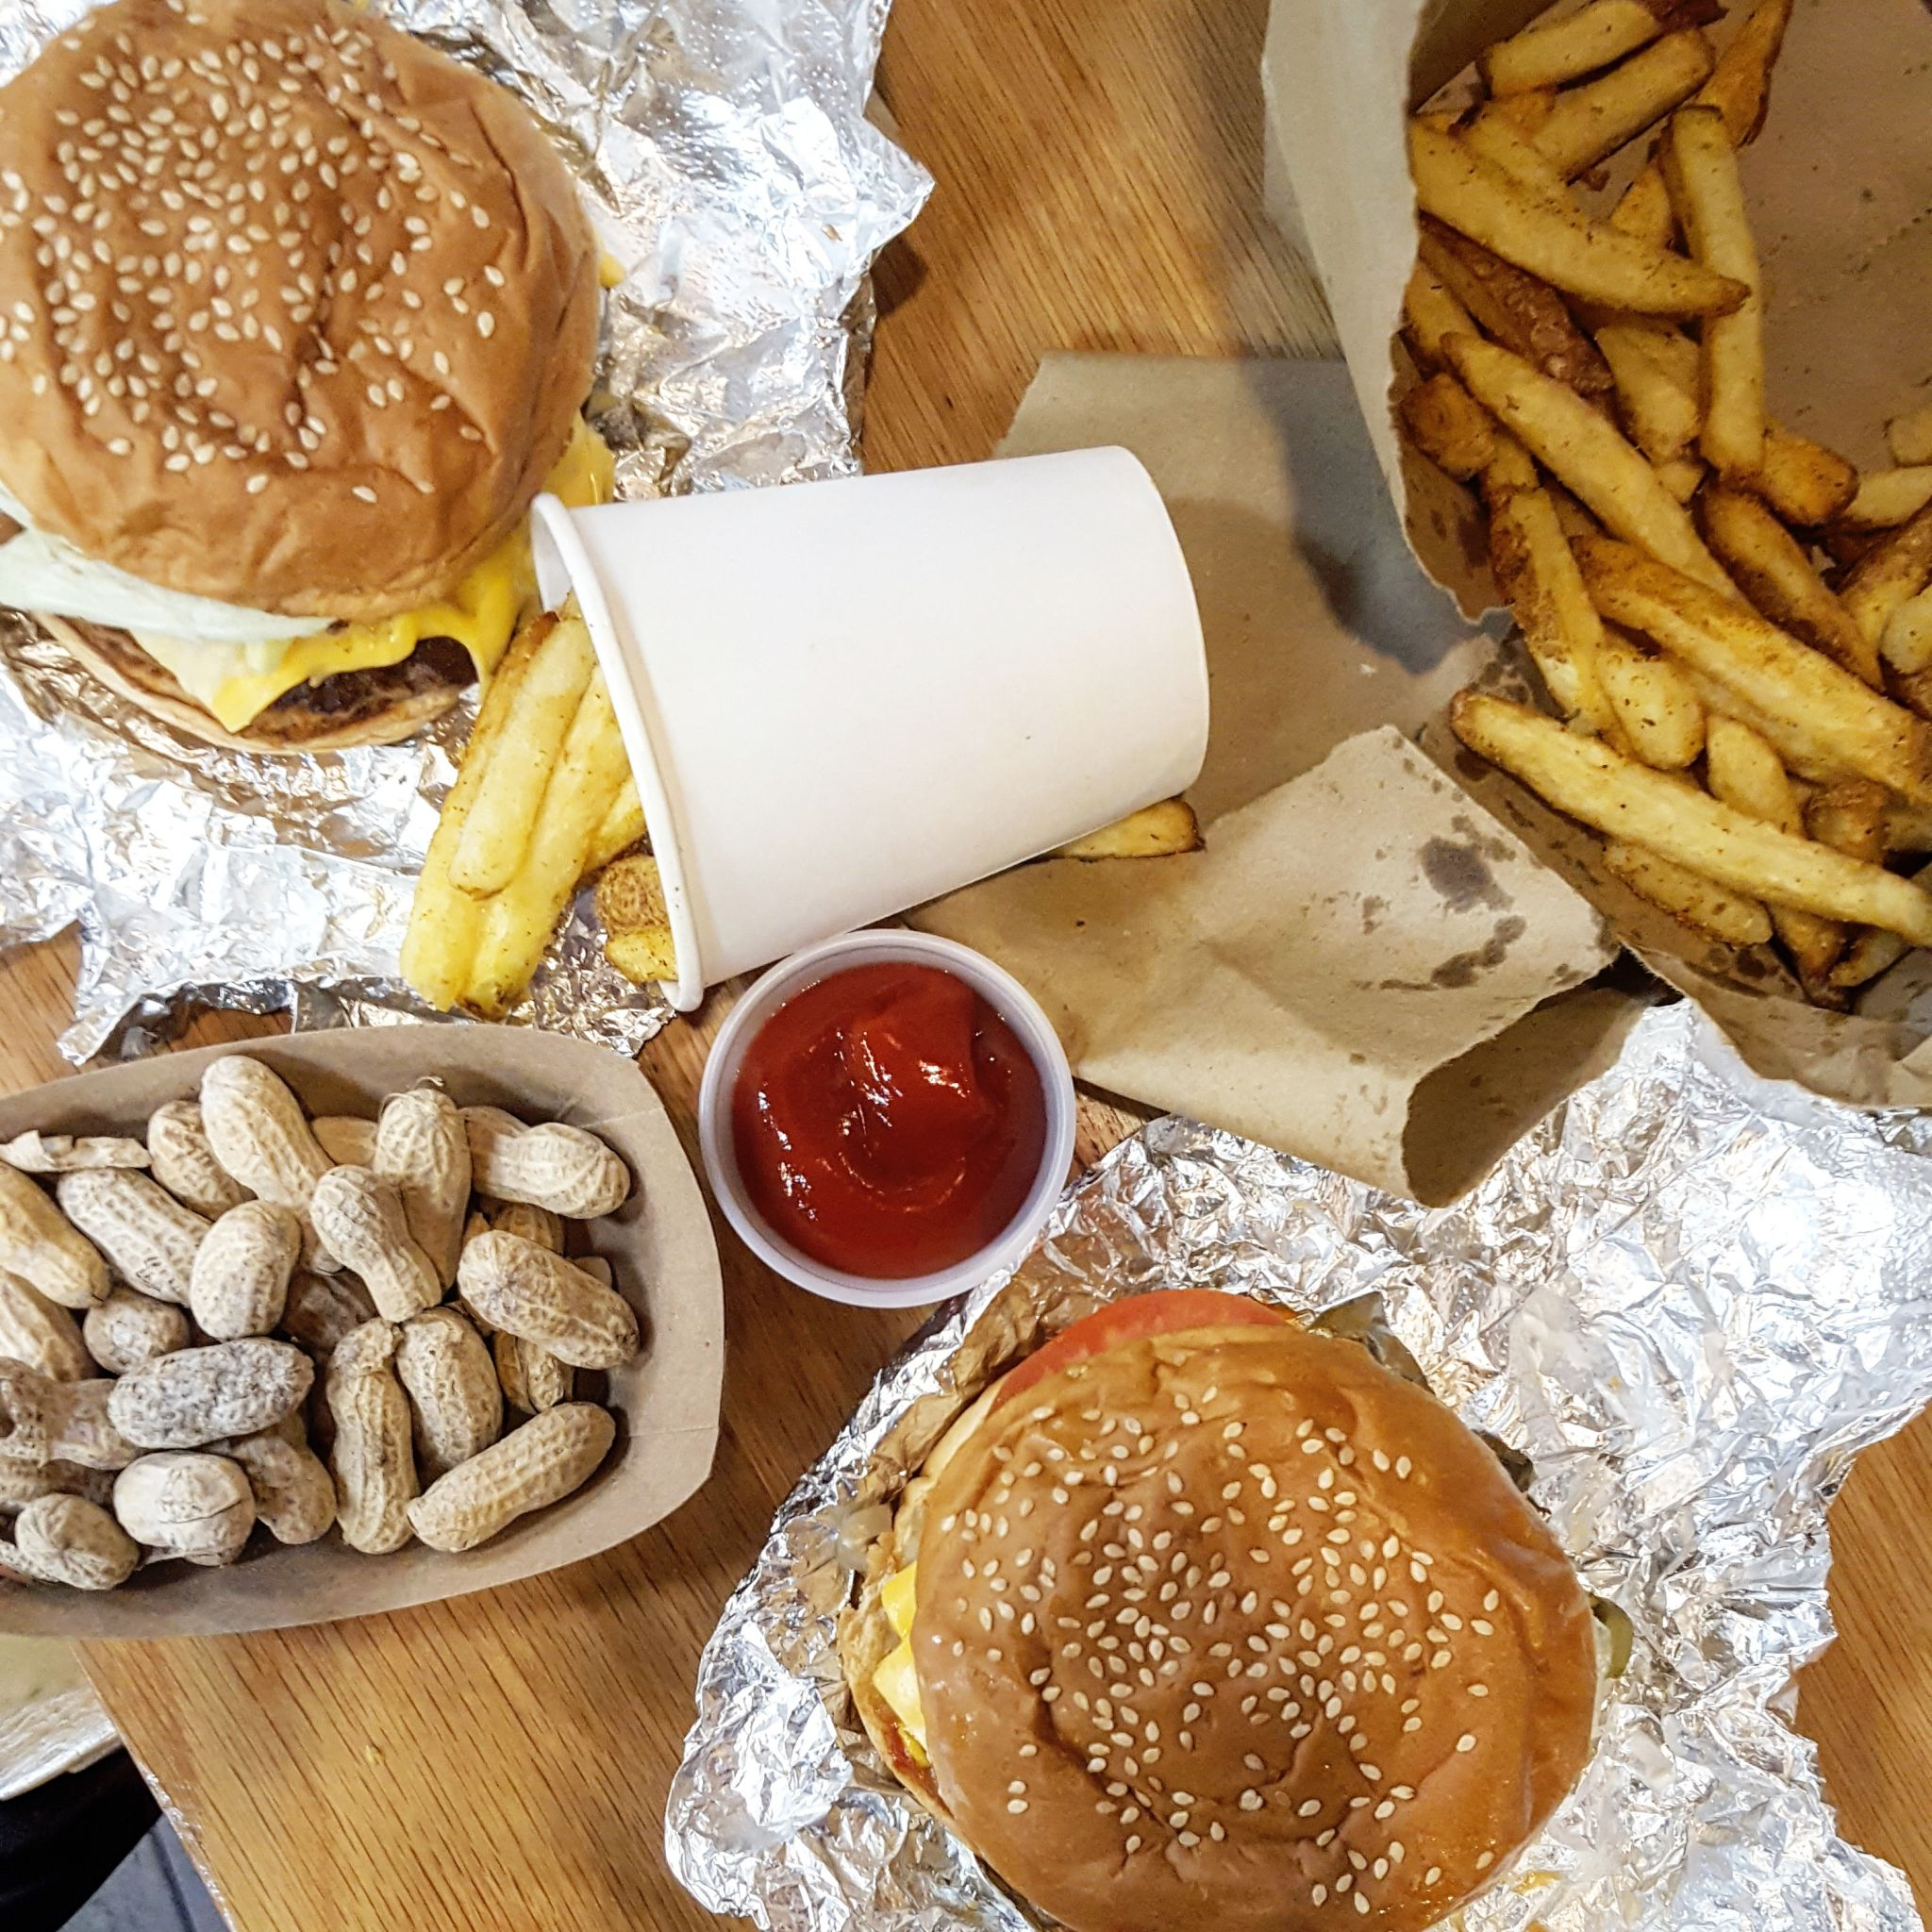 Burgers at Five Guys